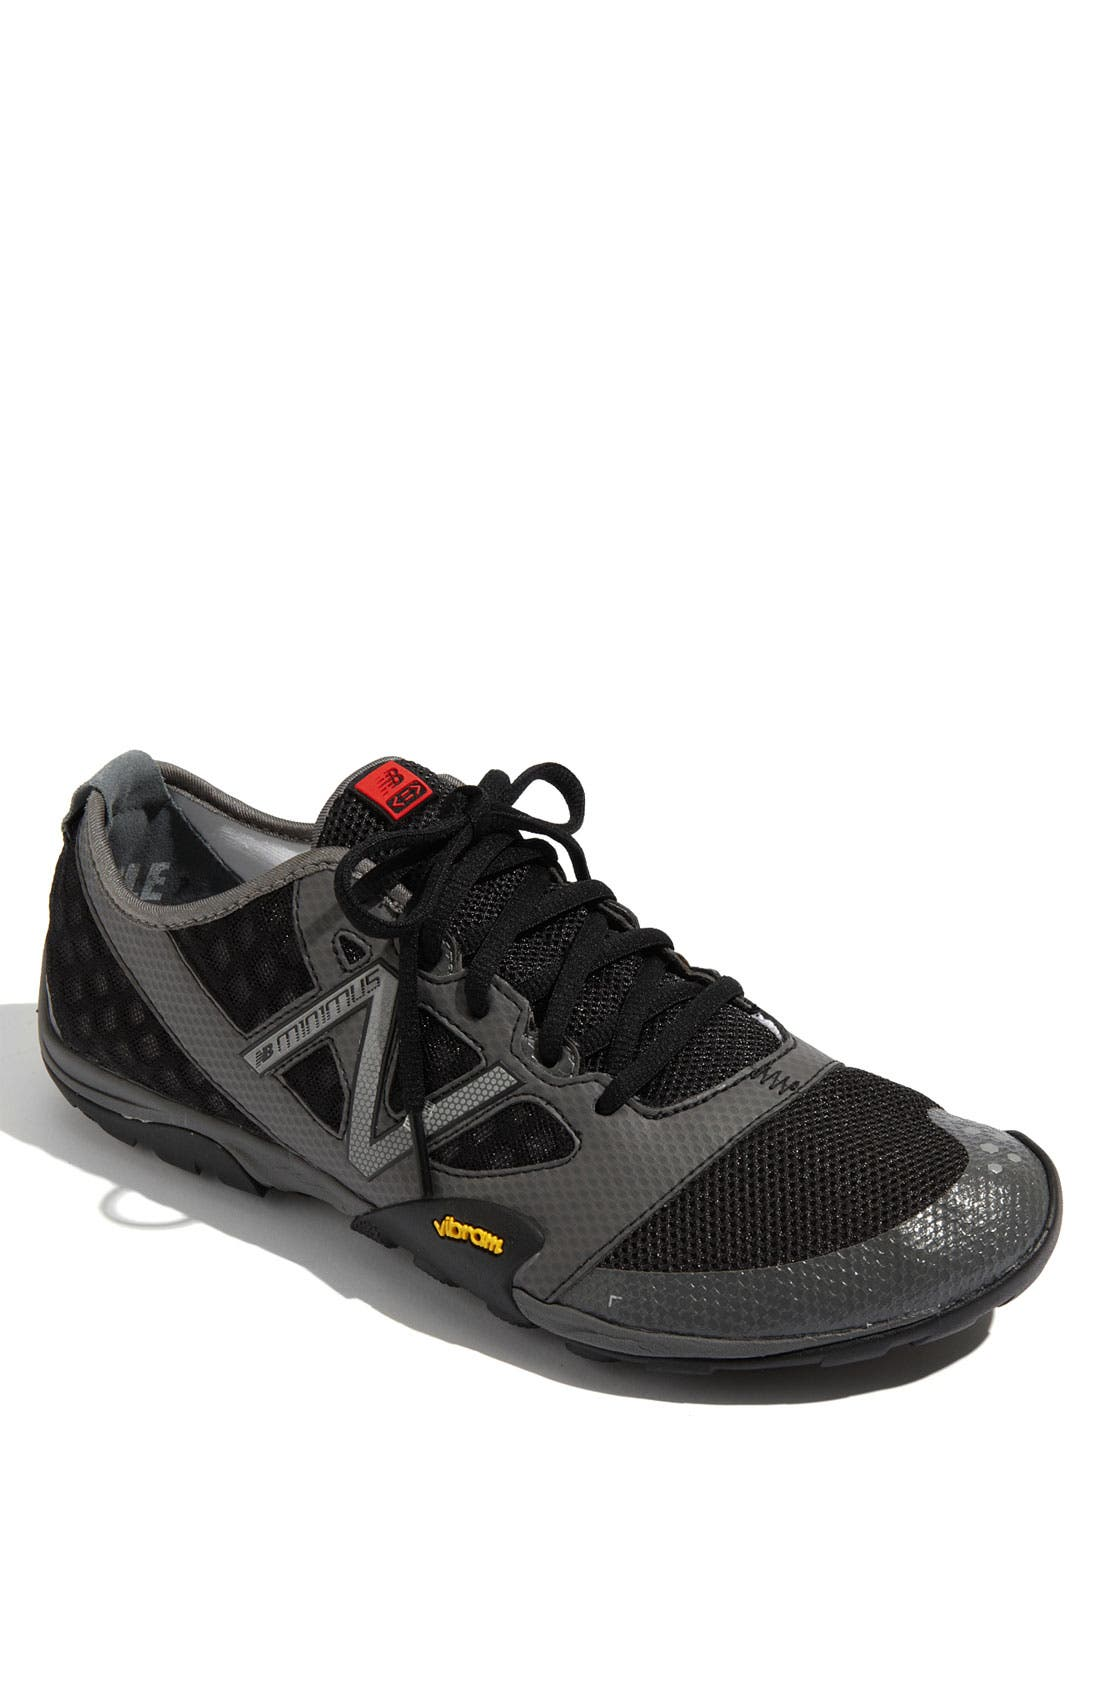 Alternate Image 1 Selected - New Balance 'MT 20 Minimus' Running Shoe (Men)